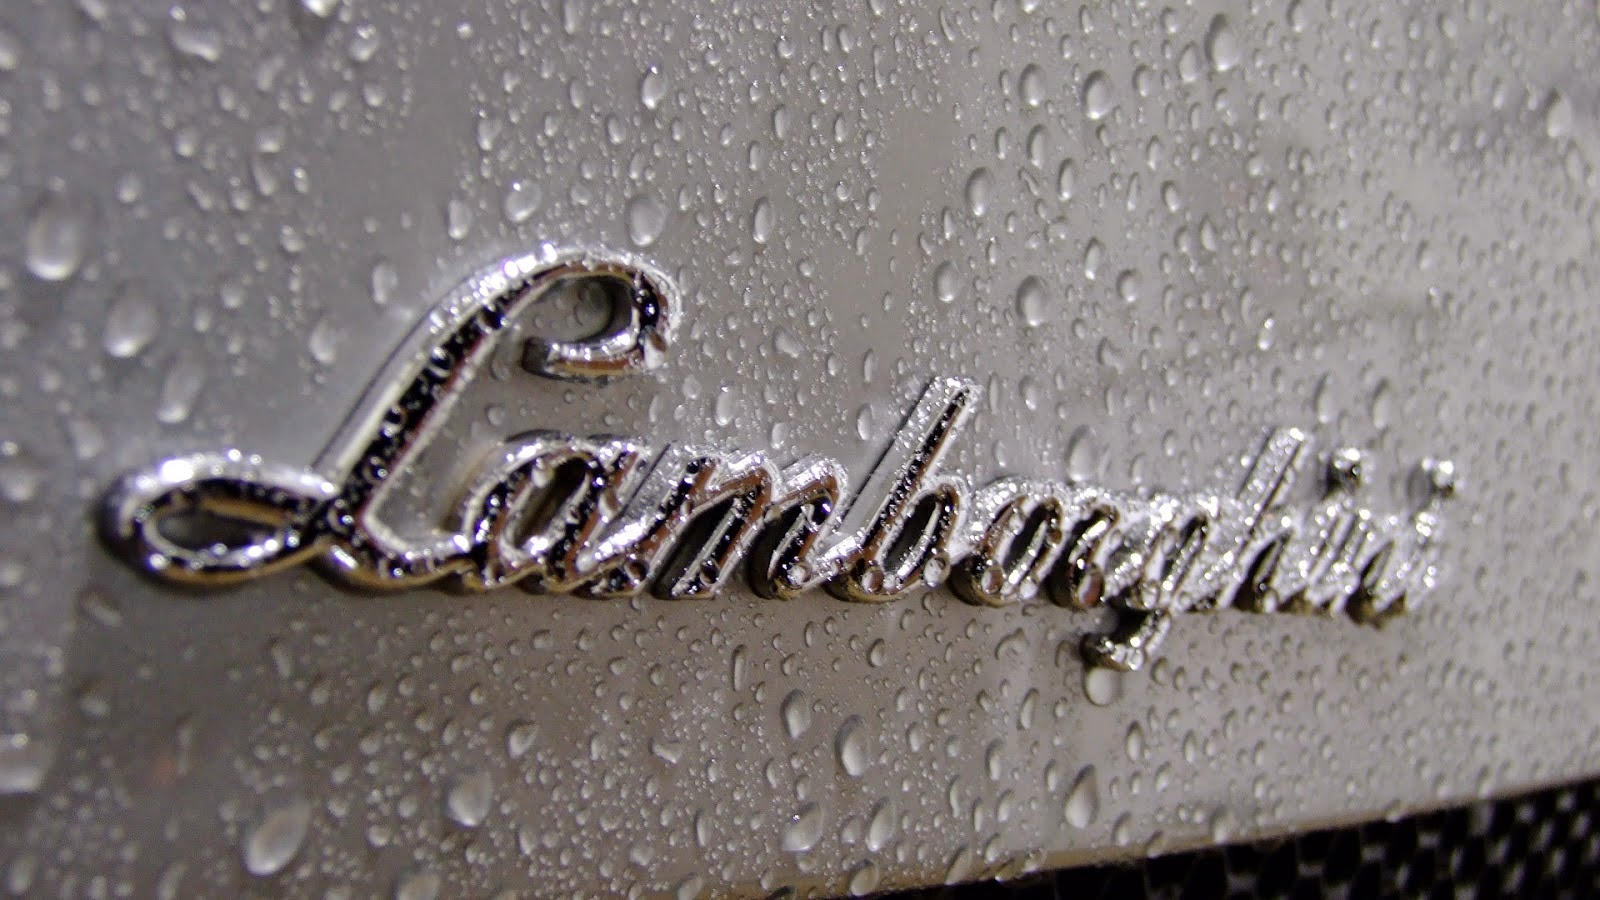 lamborghini logo with water drops